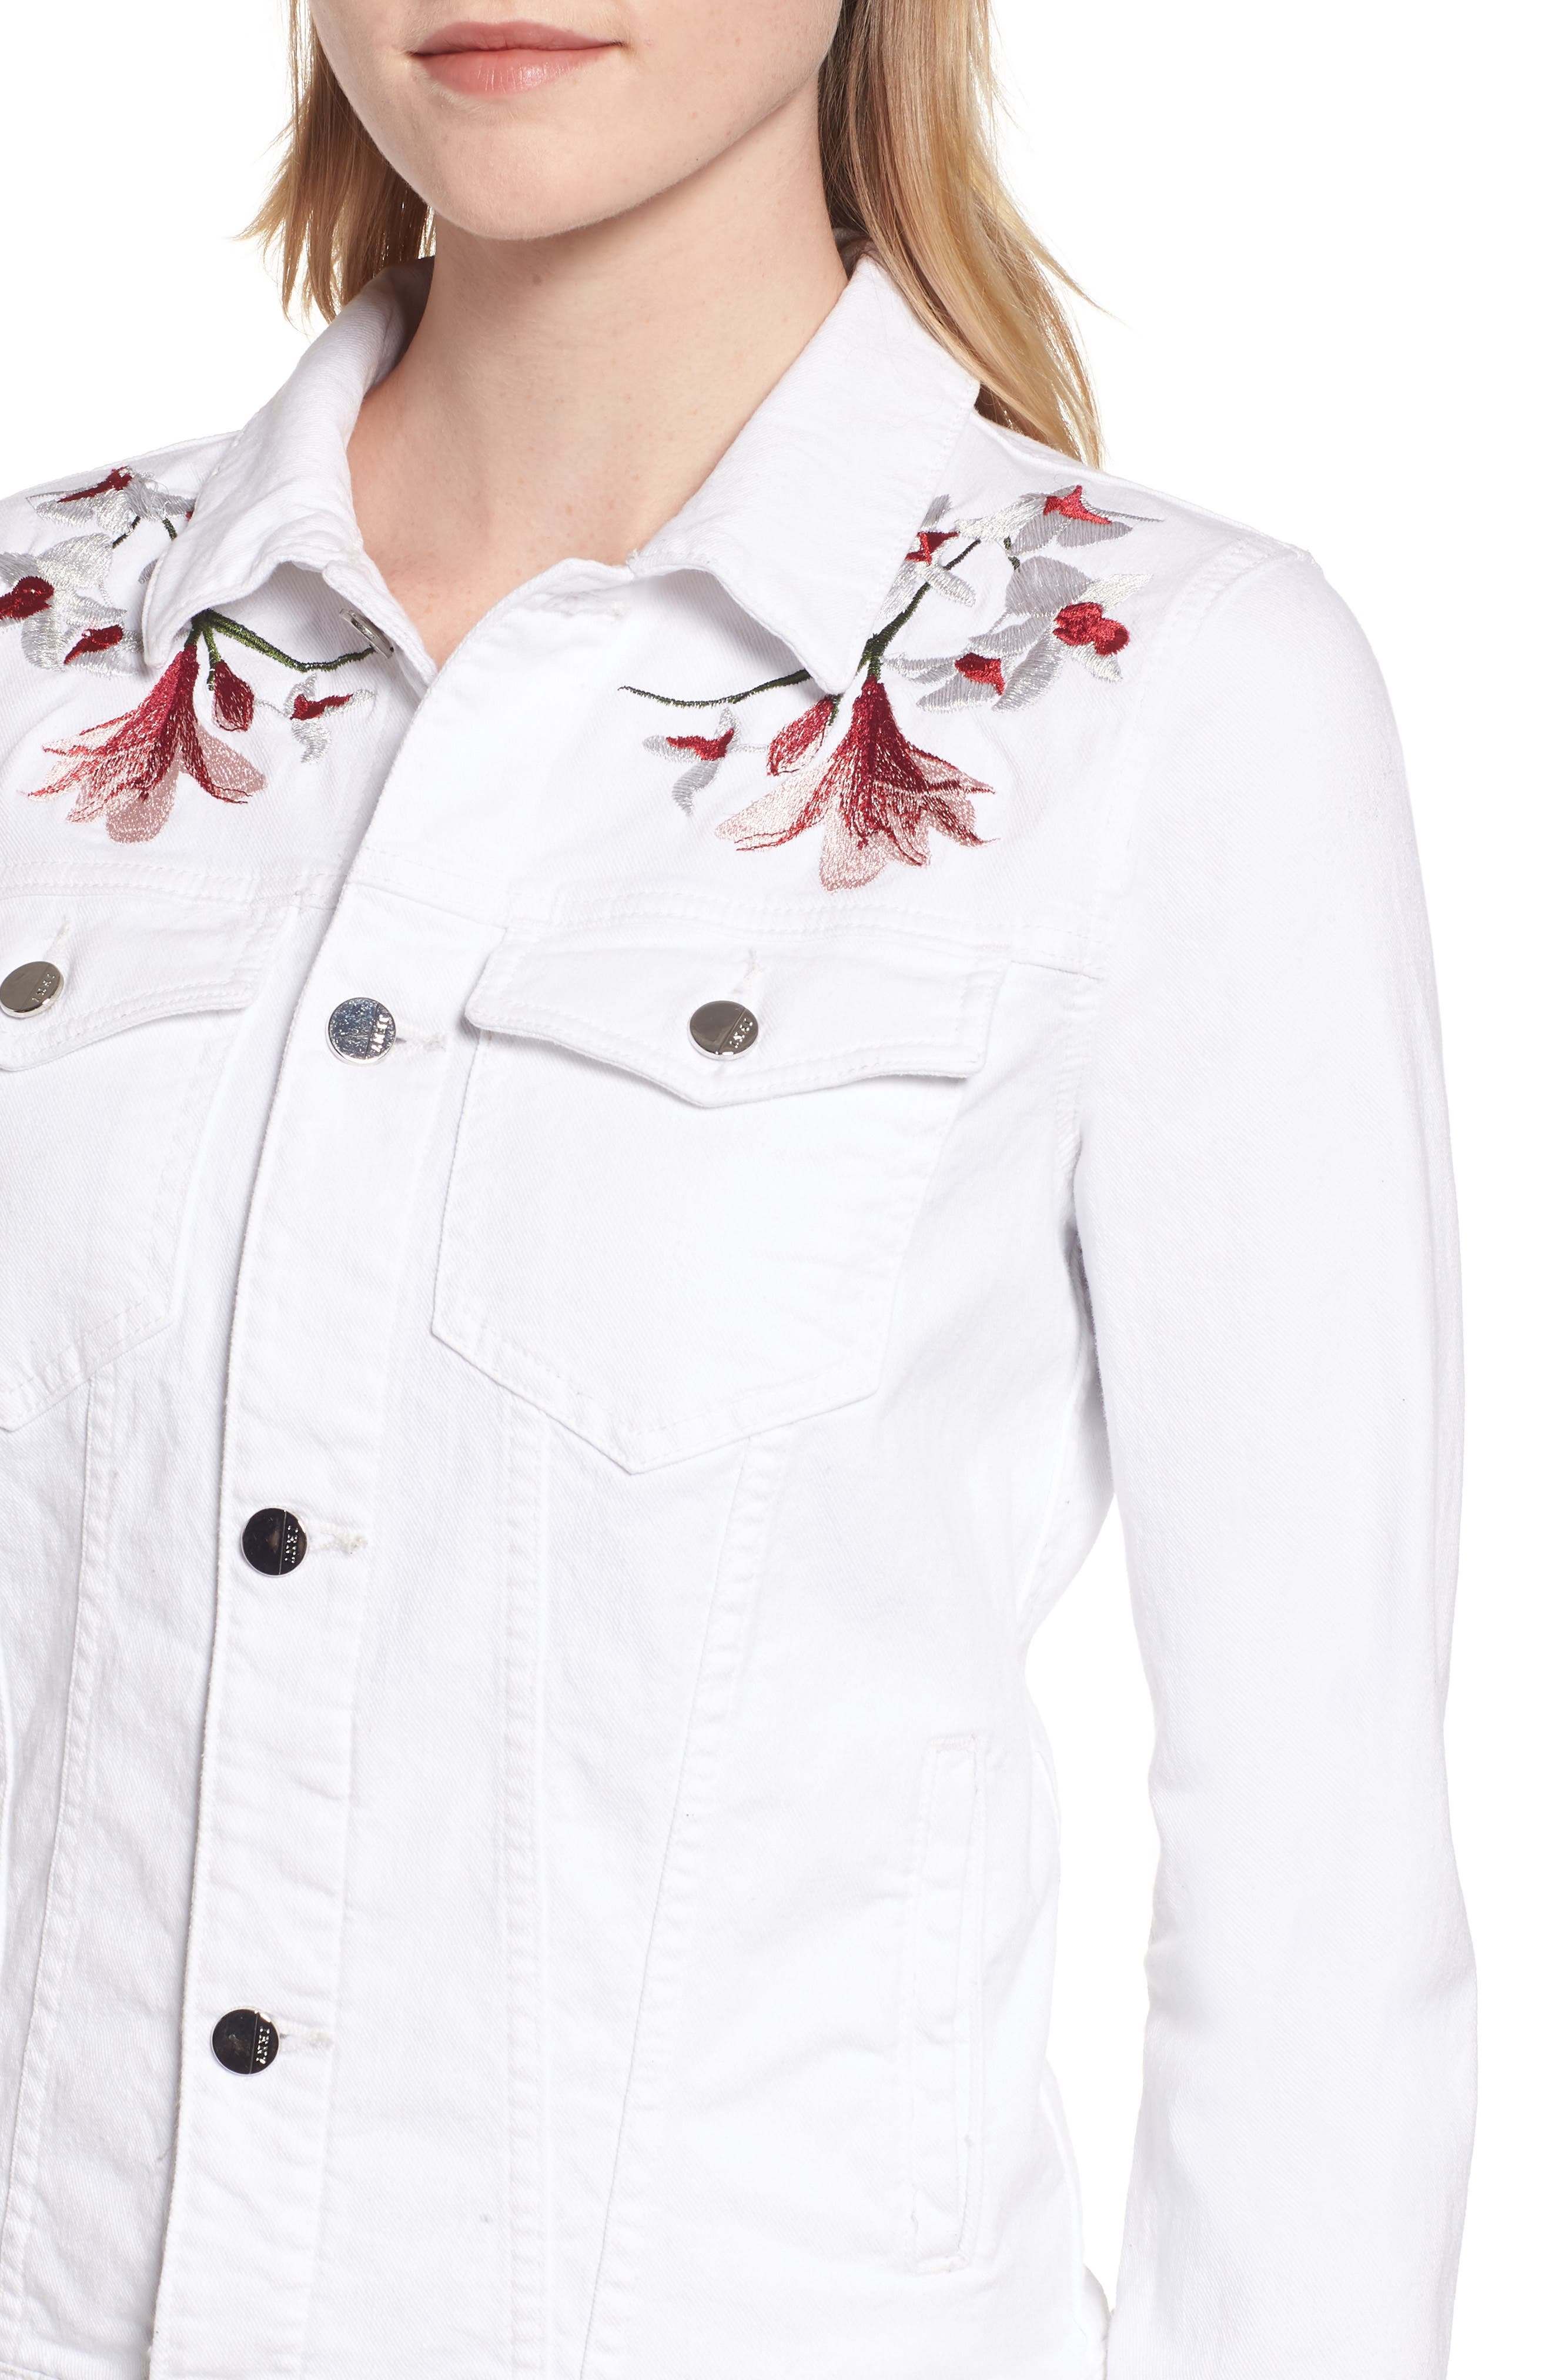 JEN7 BY 7 FOR ALL MANKIND, Embroidered Denim Jacket, Alternate thumbnail 5, color, 102